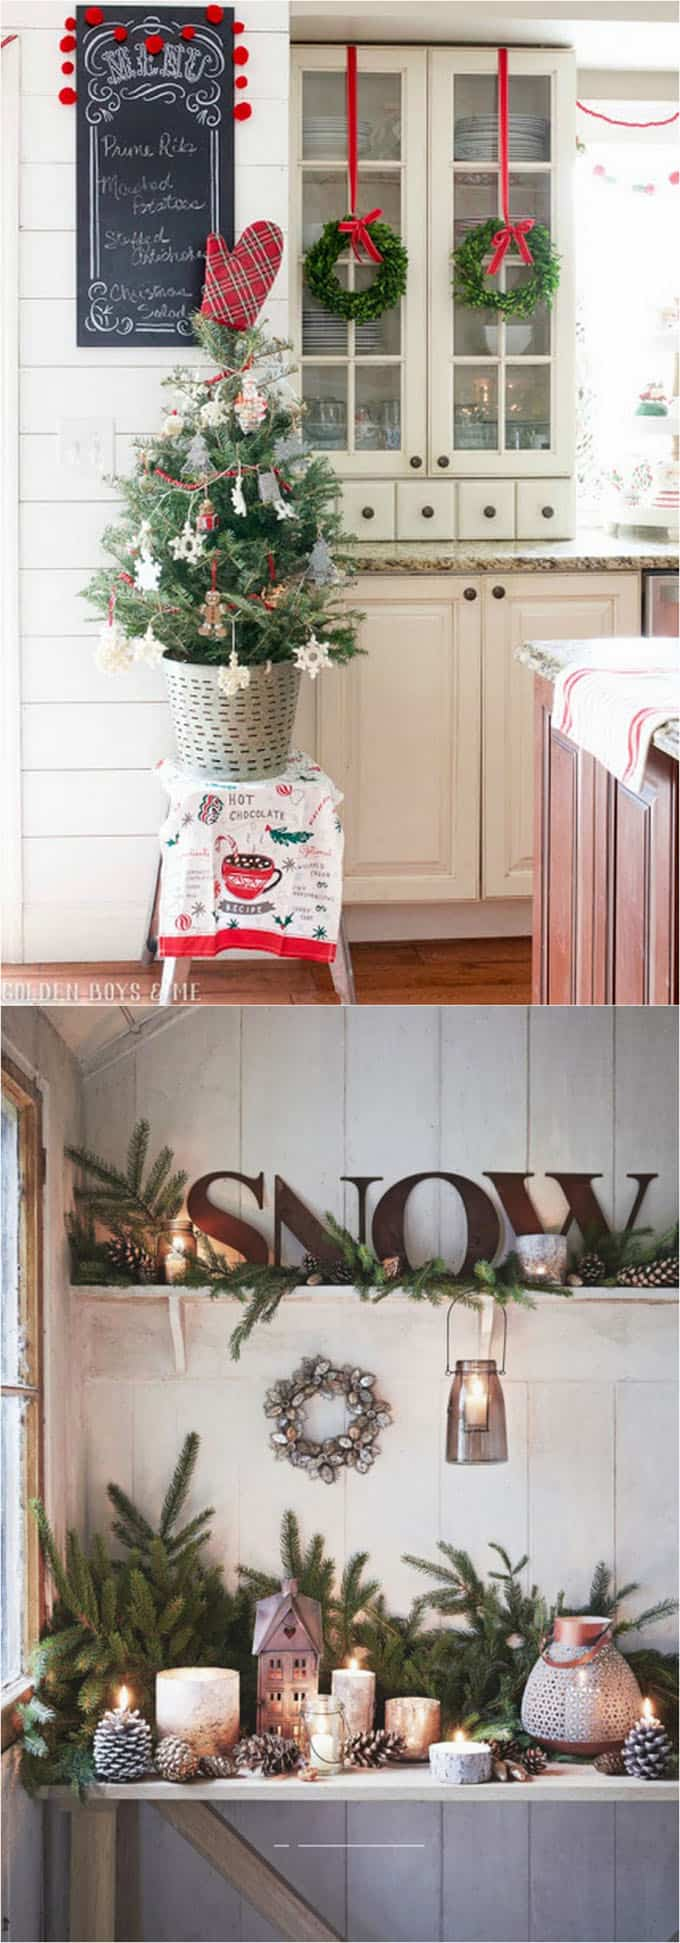 100 favorite christmas decorating ideas every room apieceofrainbow 5 - 100+ Favorite Christmas Decorating Ideas For Every Room in Your Home : Part 2